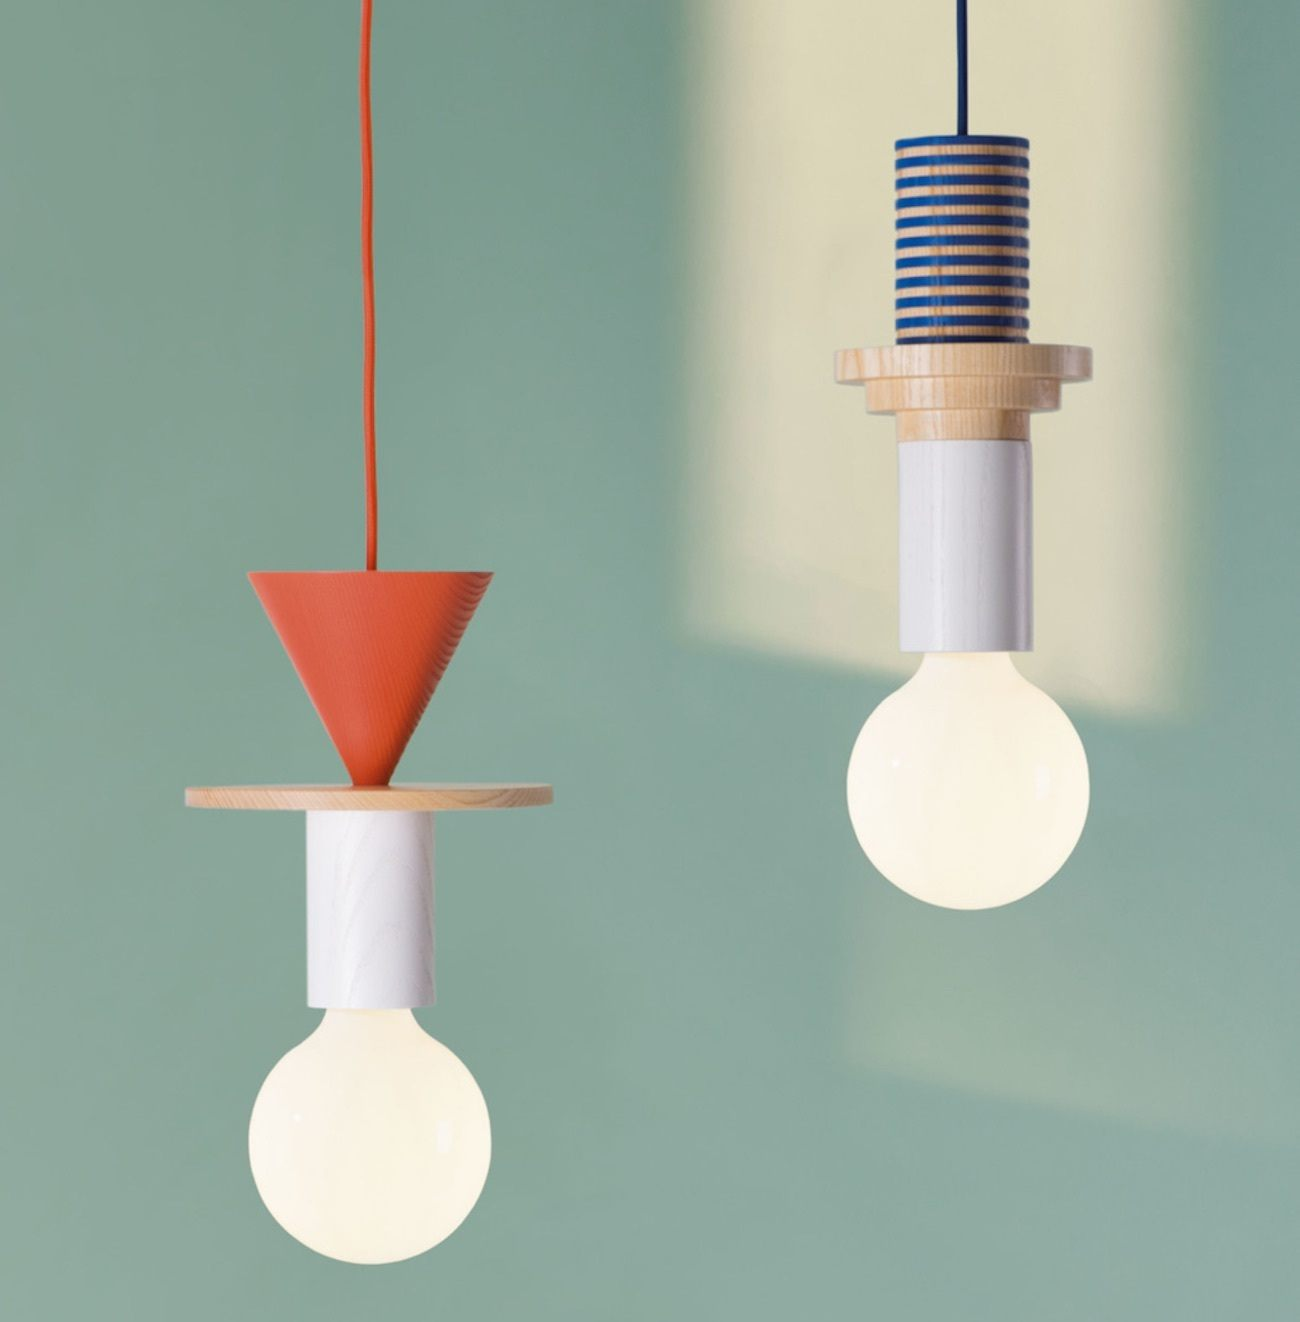 Junit Lamp by Schneid